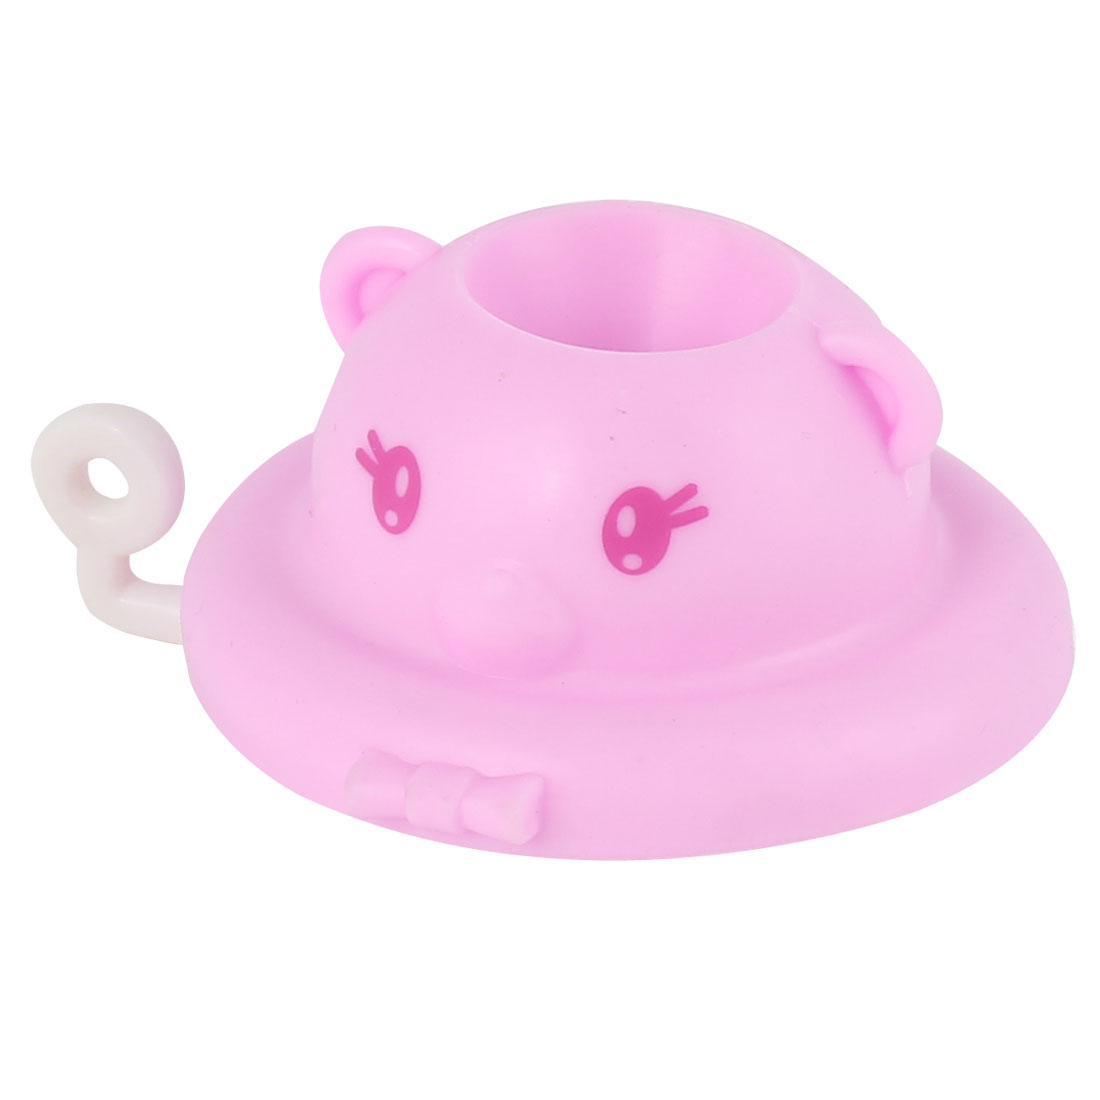 Household Home Kitchen Cartoon Shaped Tap Water Saving Strainer Device Pink